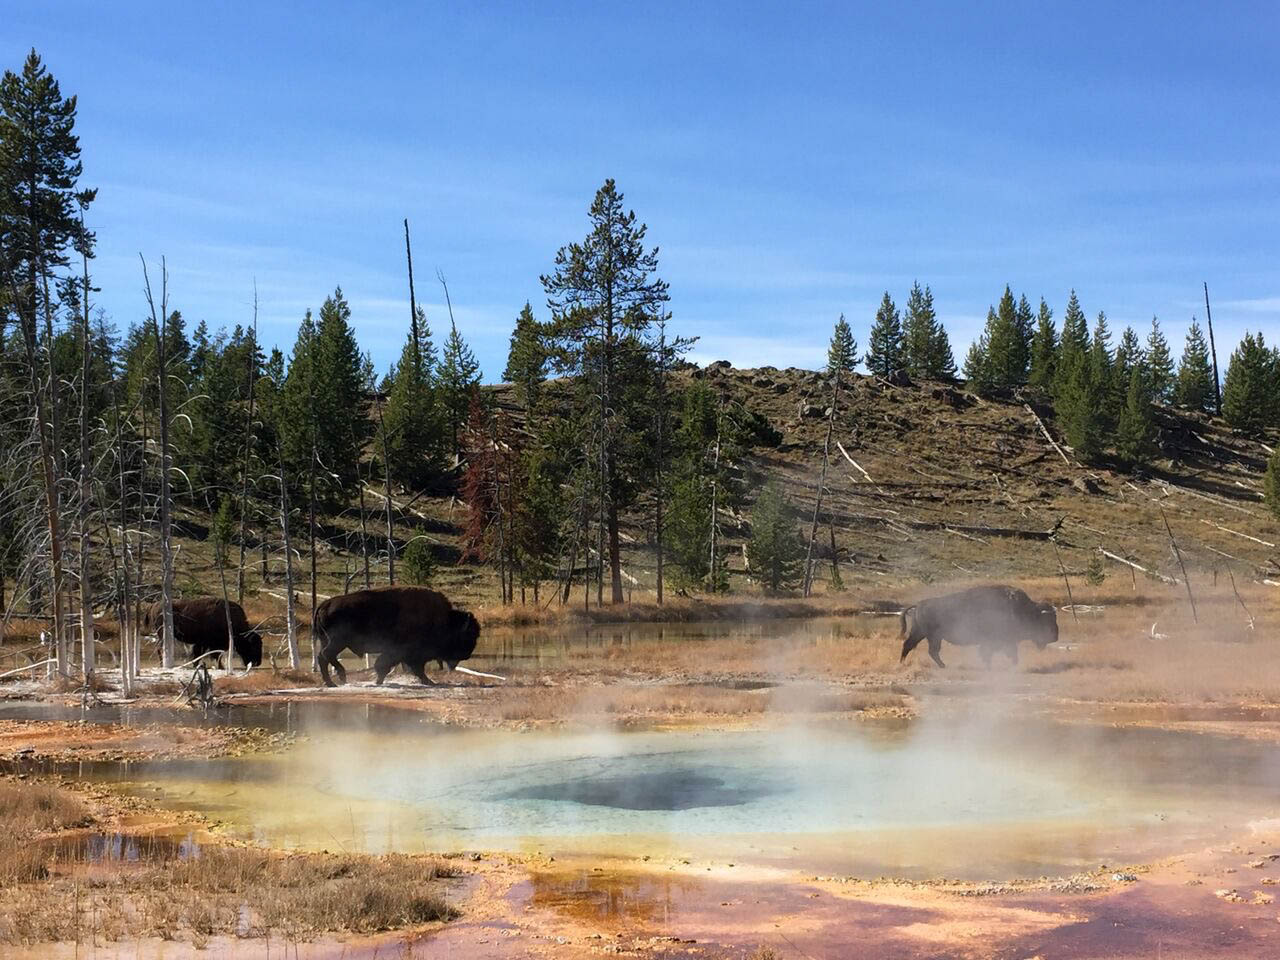 A herd of bison walks though the active geothermal landscape of  Yellowstone National Park  in 2016.